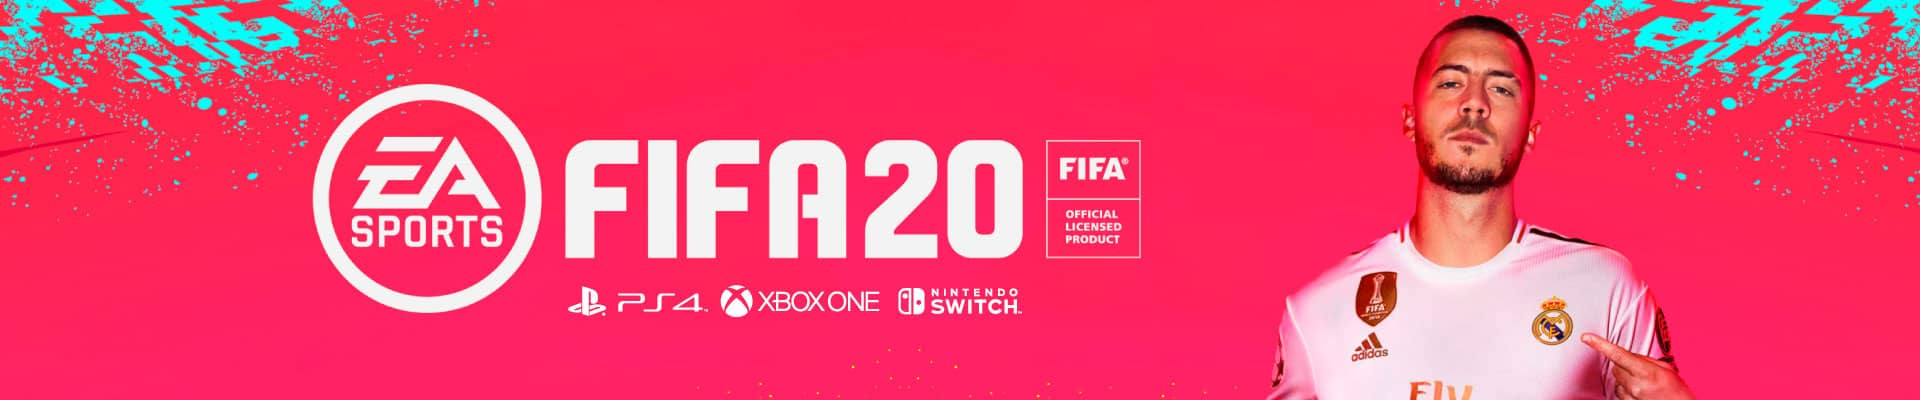 Fifa 20 en Xtreme Play Colombia